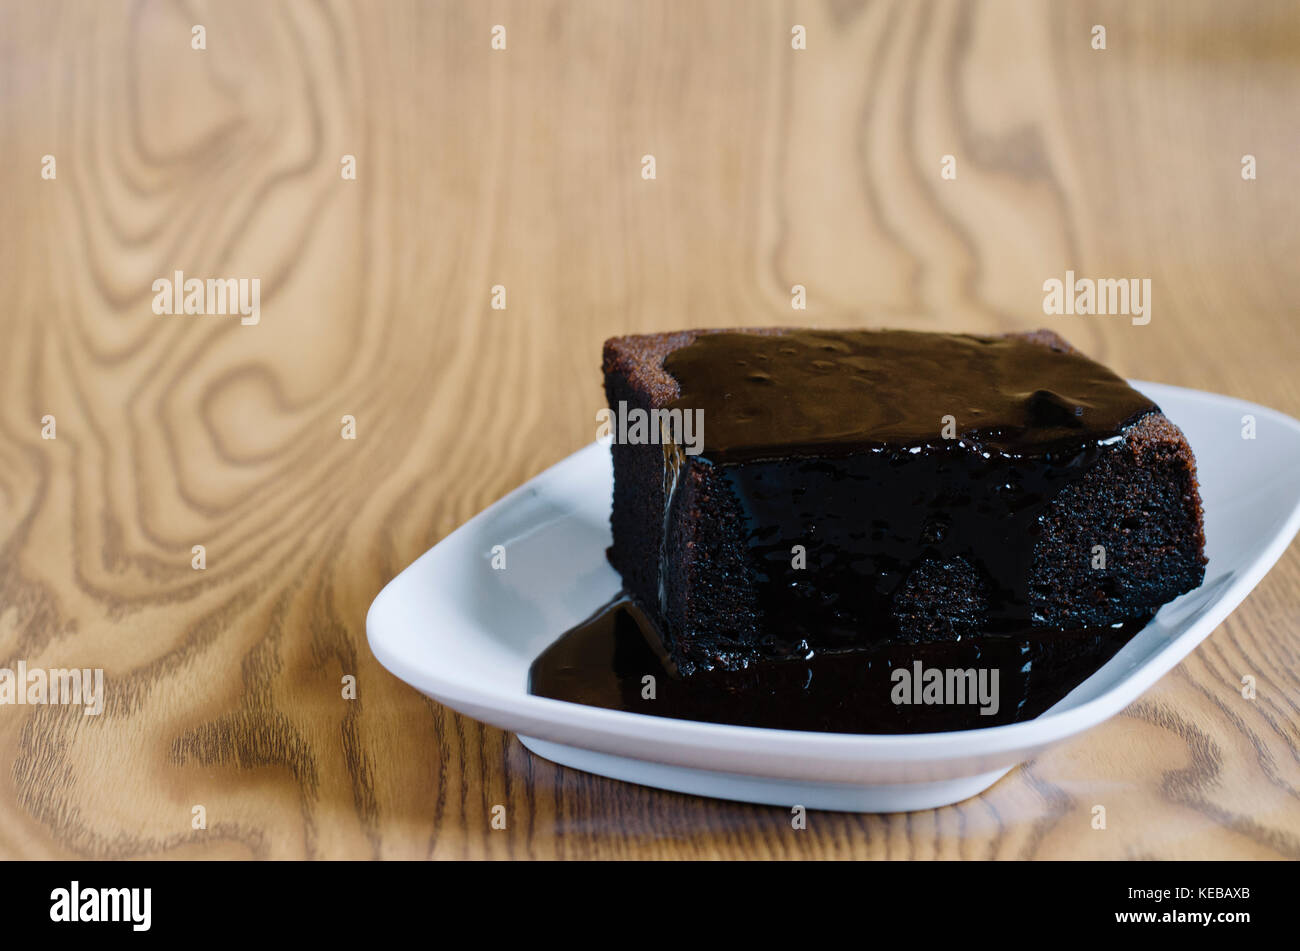 Chocolate sponge cake covered with melted chocolate. - Stock Image